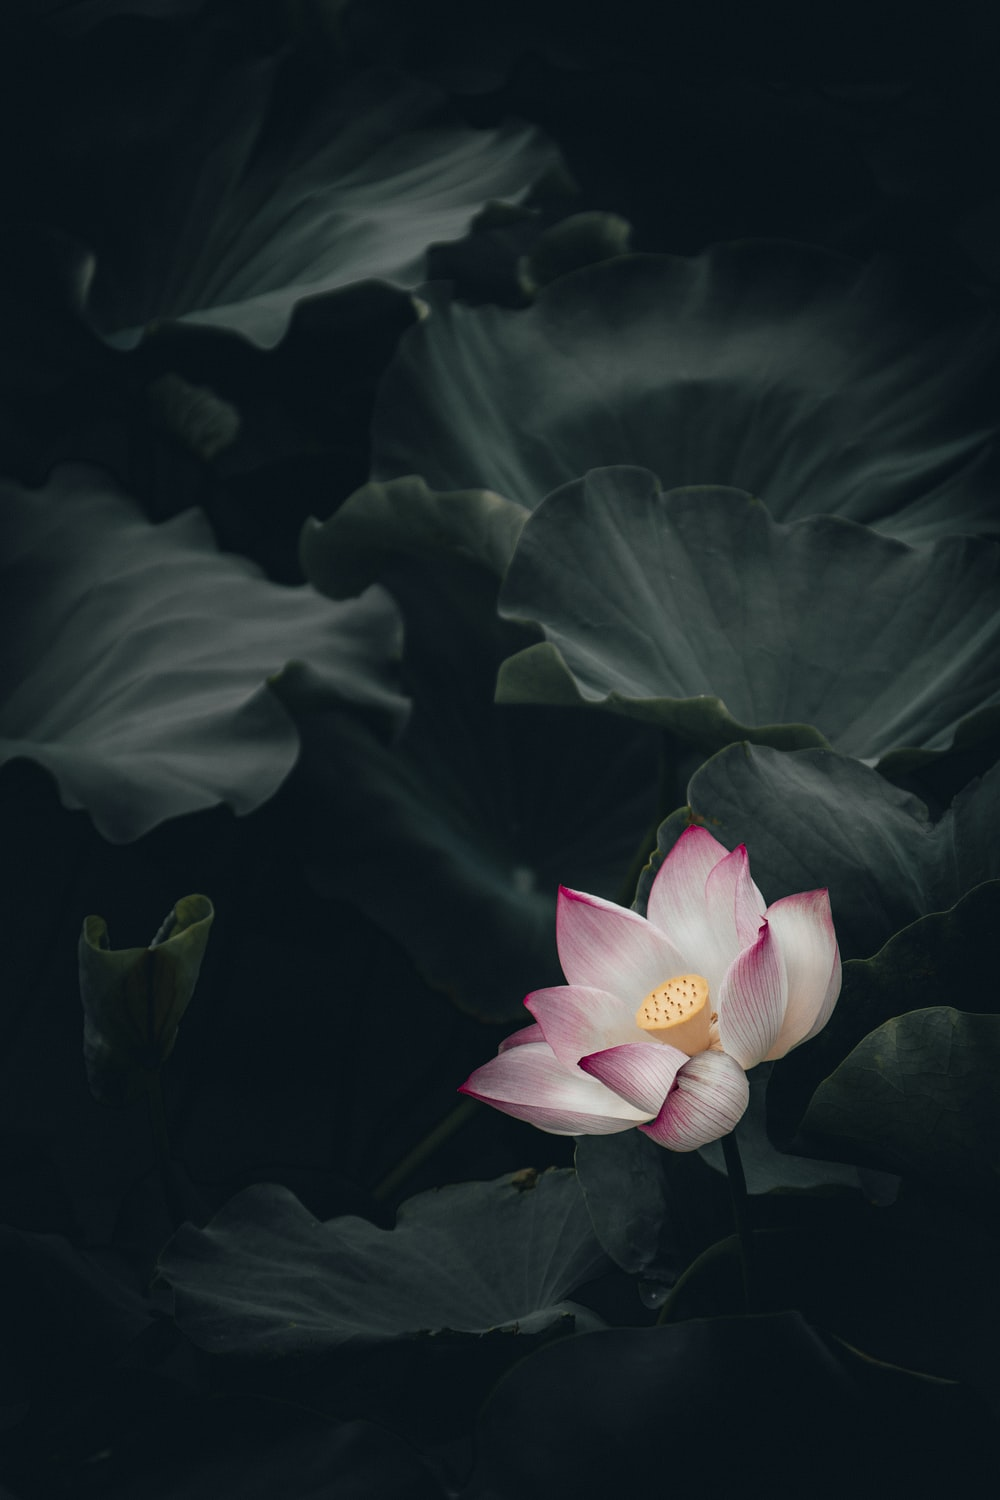 27 lotus pictures download free images on unsplash close up photo of pink and white petaled flower mightylinksfo